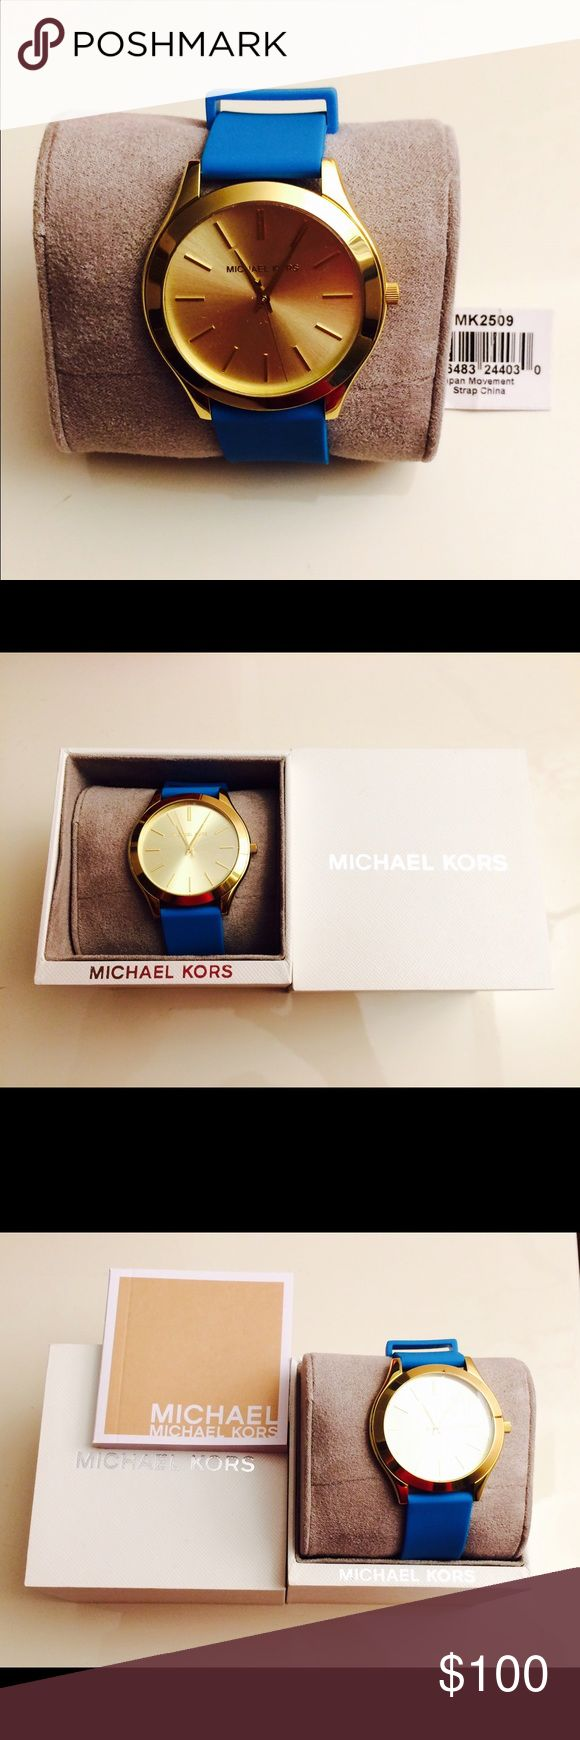 Michael Kors women's strap watch Michael Kors women's slim runaway sporty teal silicone strap watch. Brand new in a box with booklet and tag on. Michael Kors Jewelry